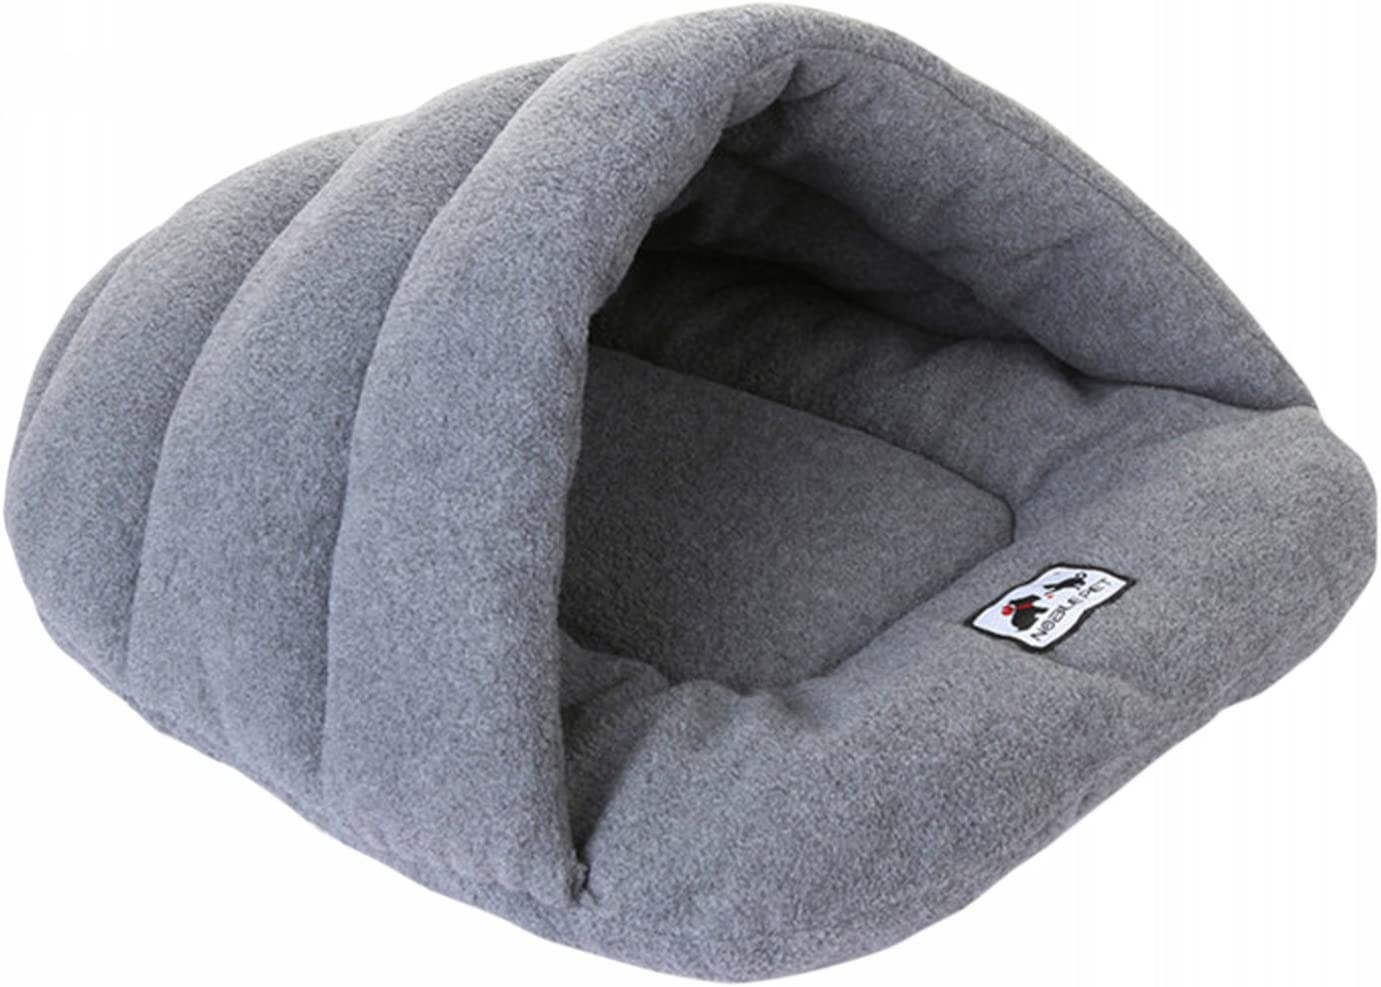 Beskie Pet Cat Puppy Tent Cave Bed for Pets Sleeping Bag Warm Soft Solid Dog Bed Cuddler House Hole Igloo Nest Cozy Bed for Small Medium Large Dogs Cats